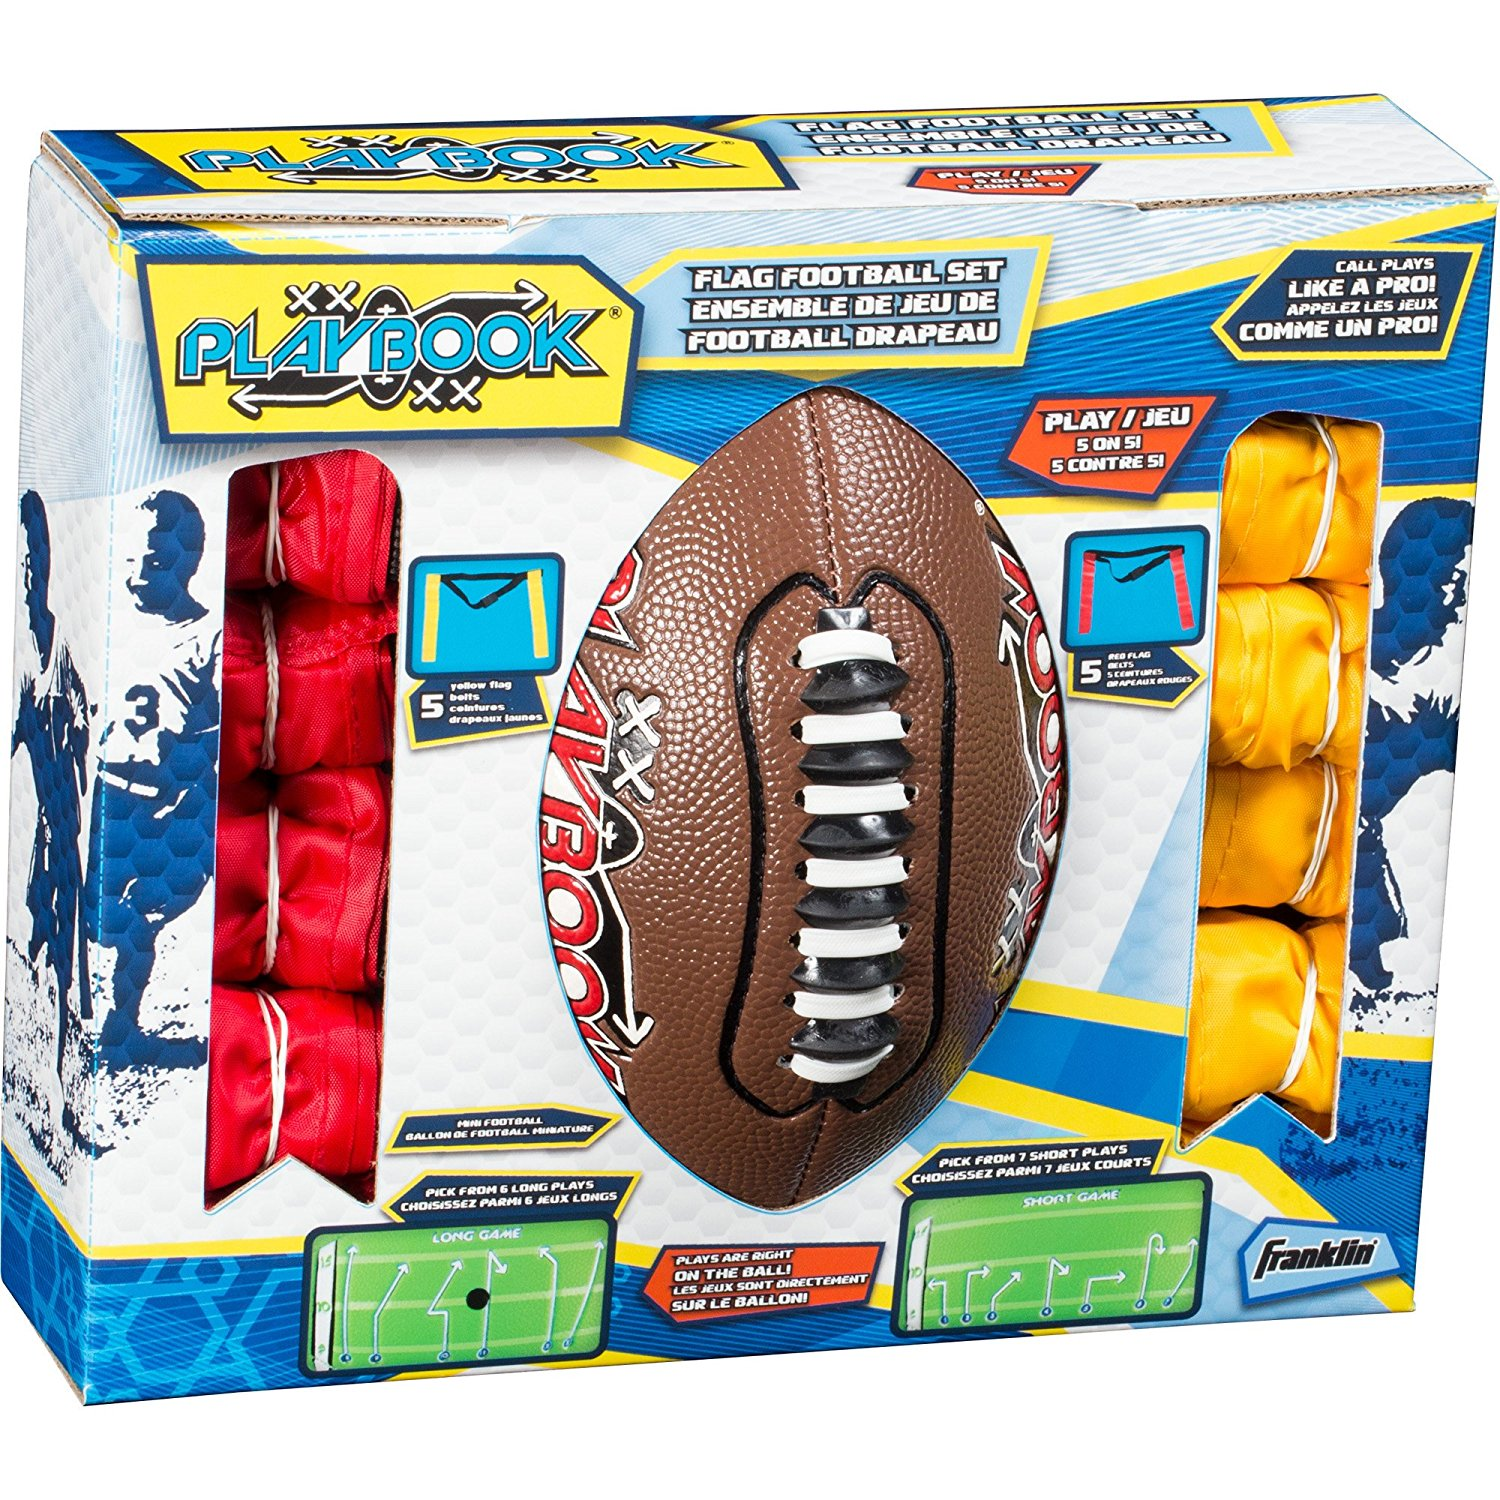 Playbook Youth Flag Football Set Includes Mini Playbook Football and Two Flag Sets of 5, Designed to field 2... by